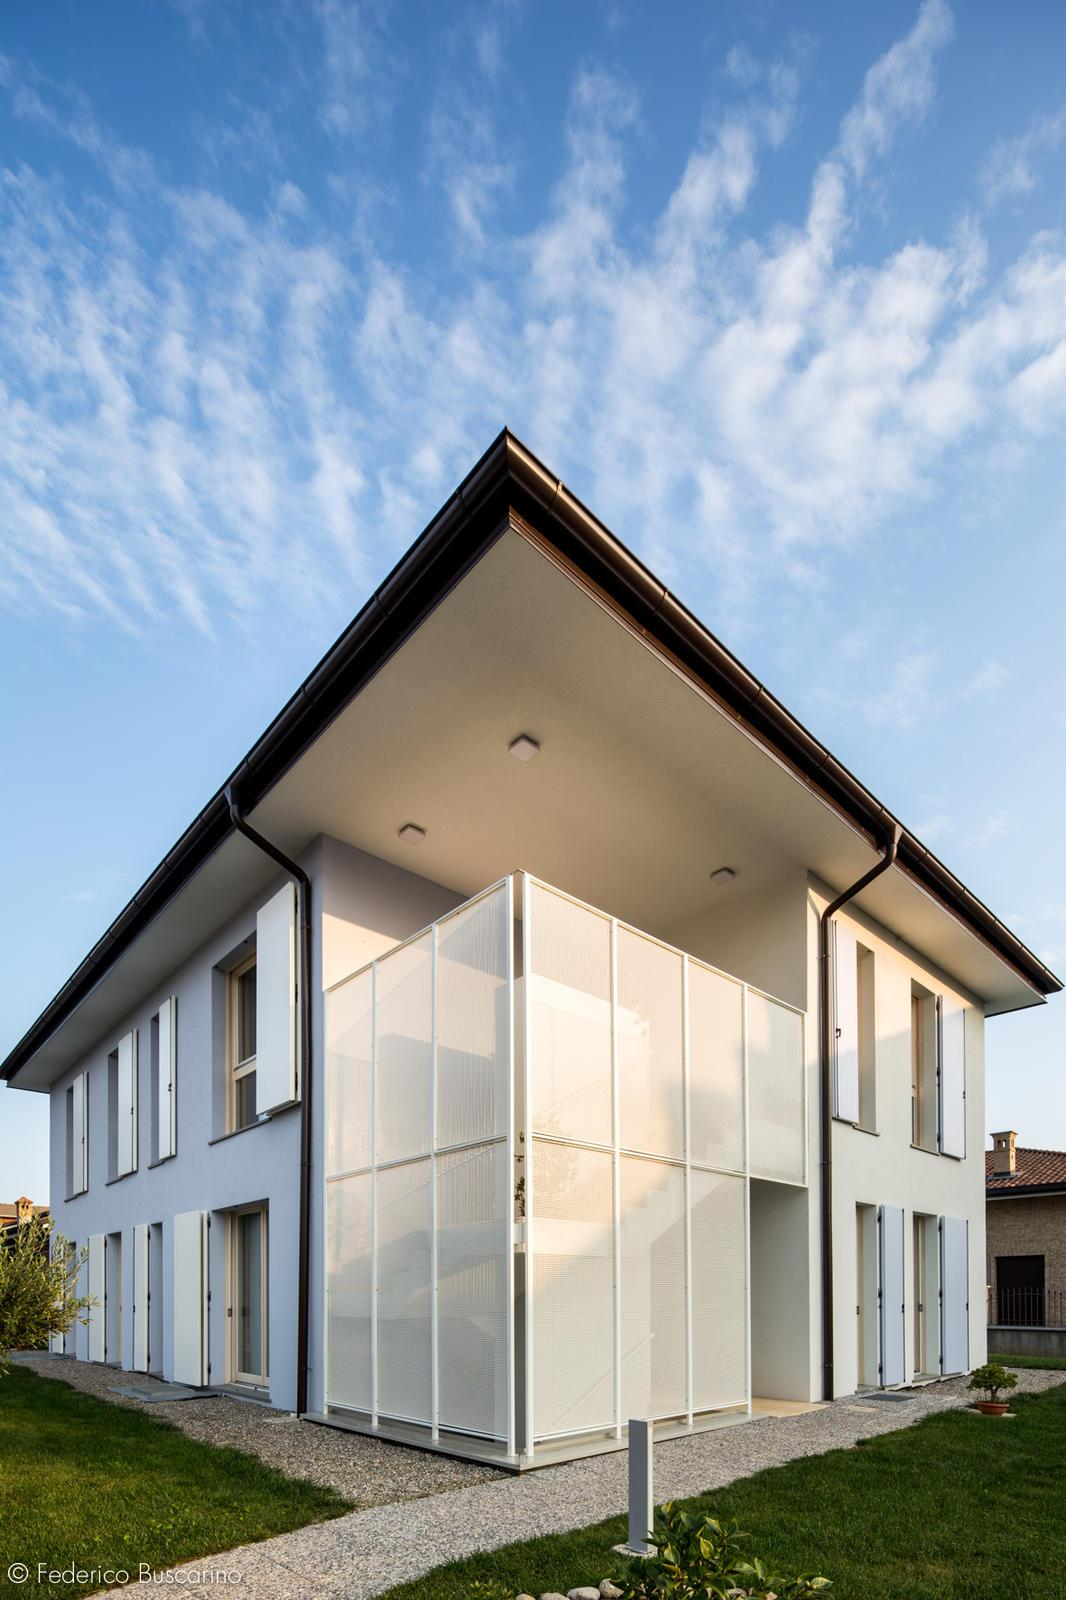 Semi Detached Nearly Zero Energy Building In Wood